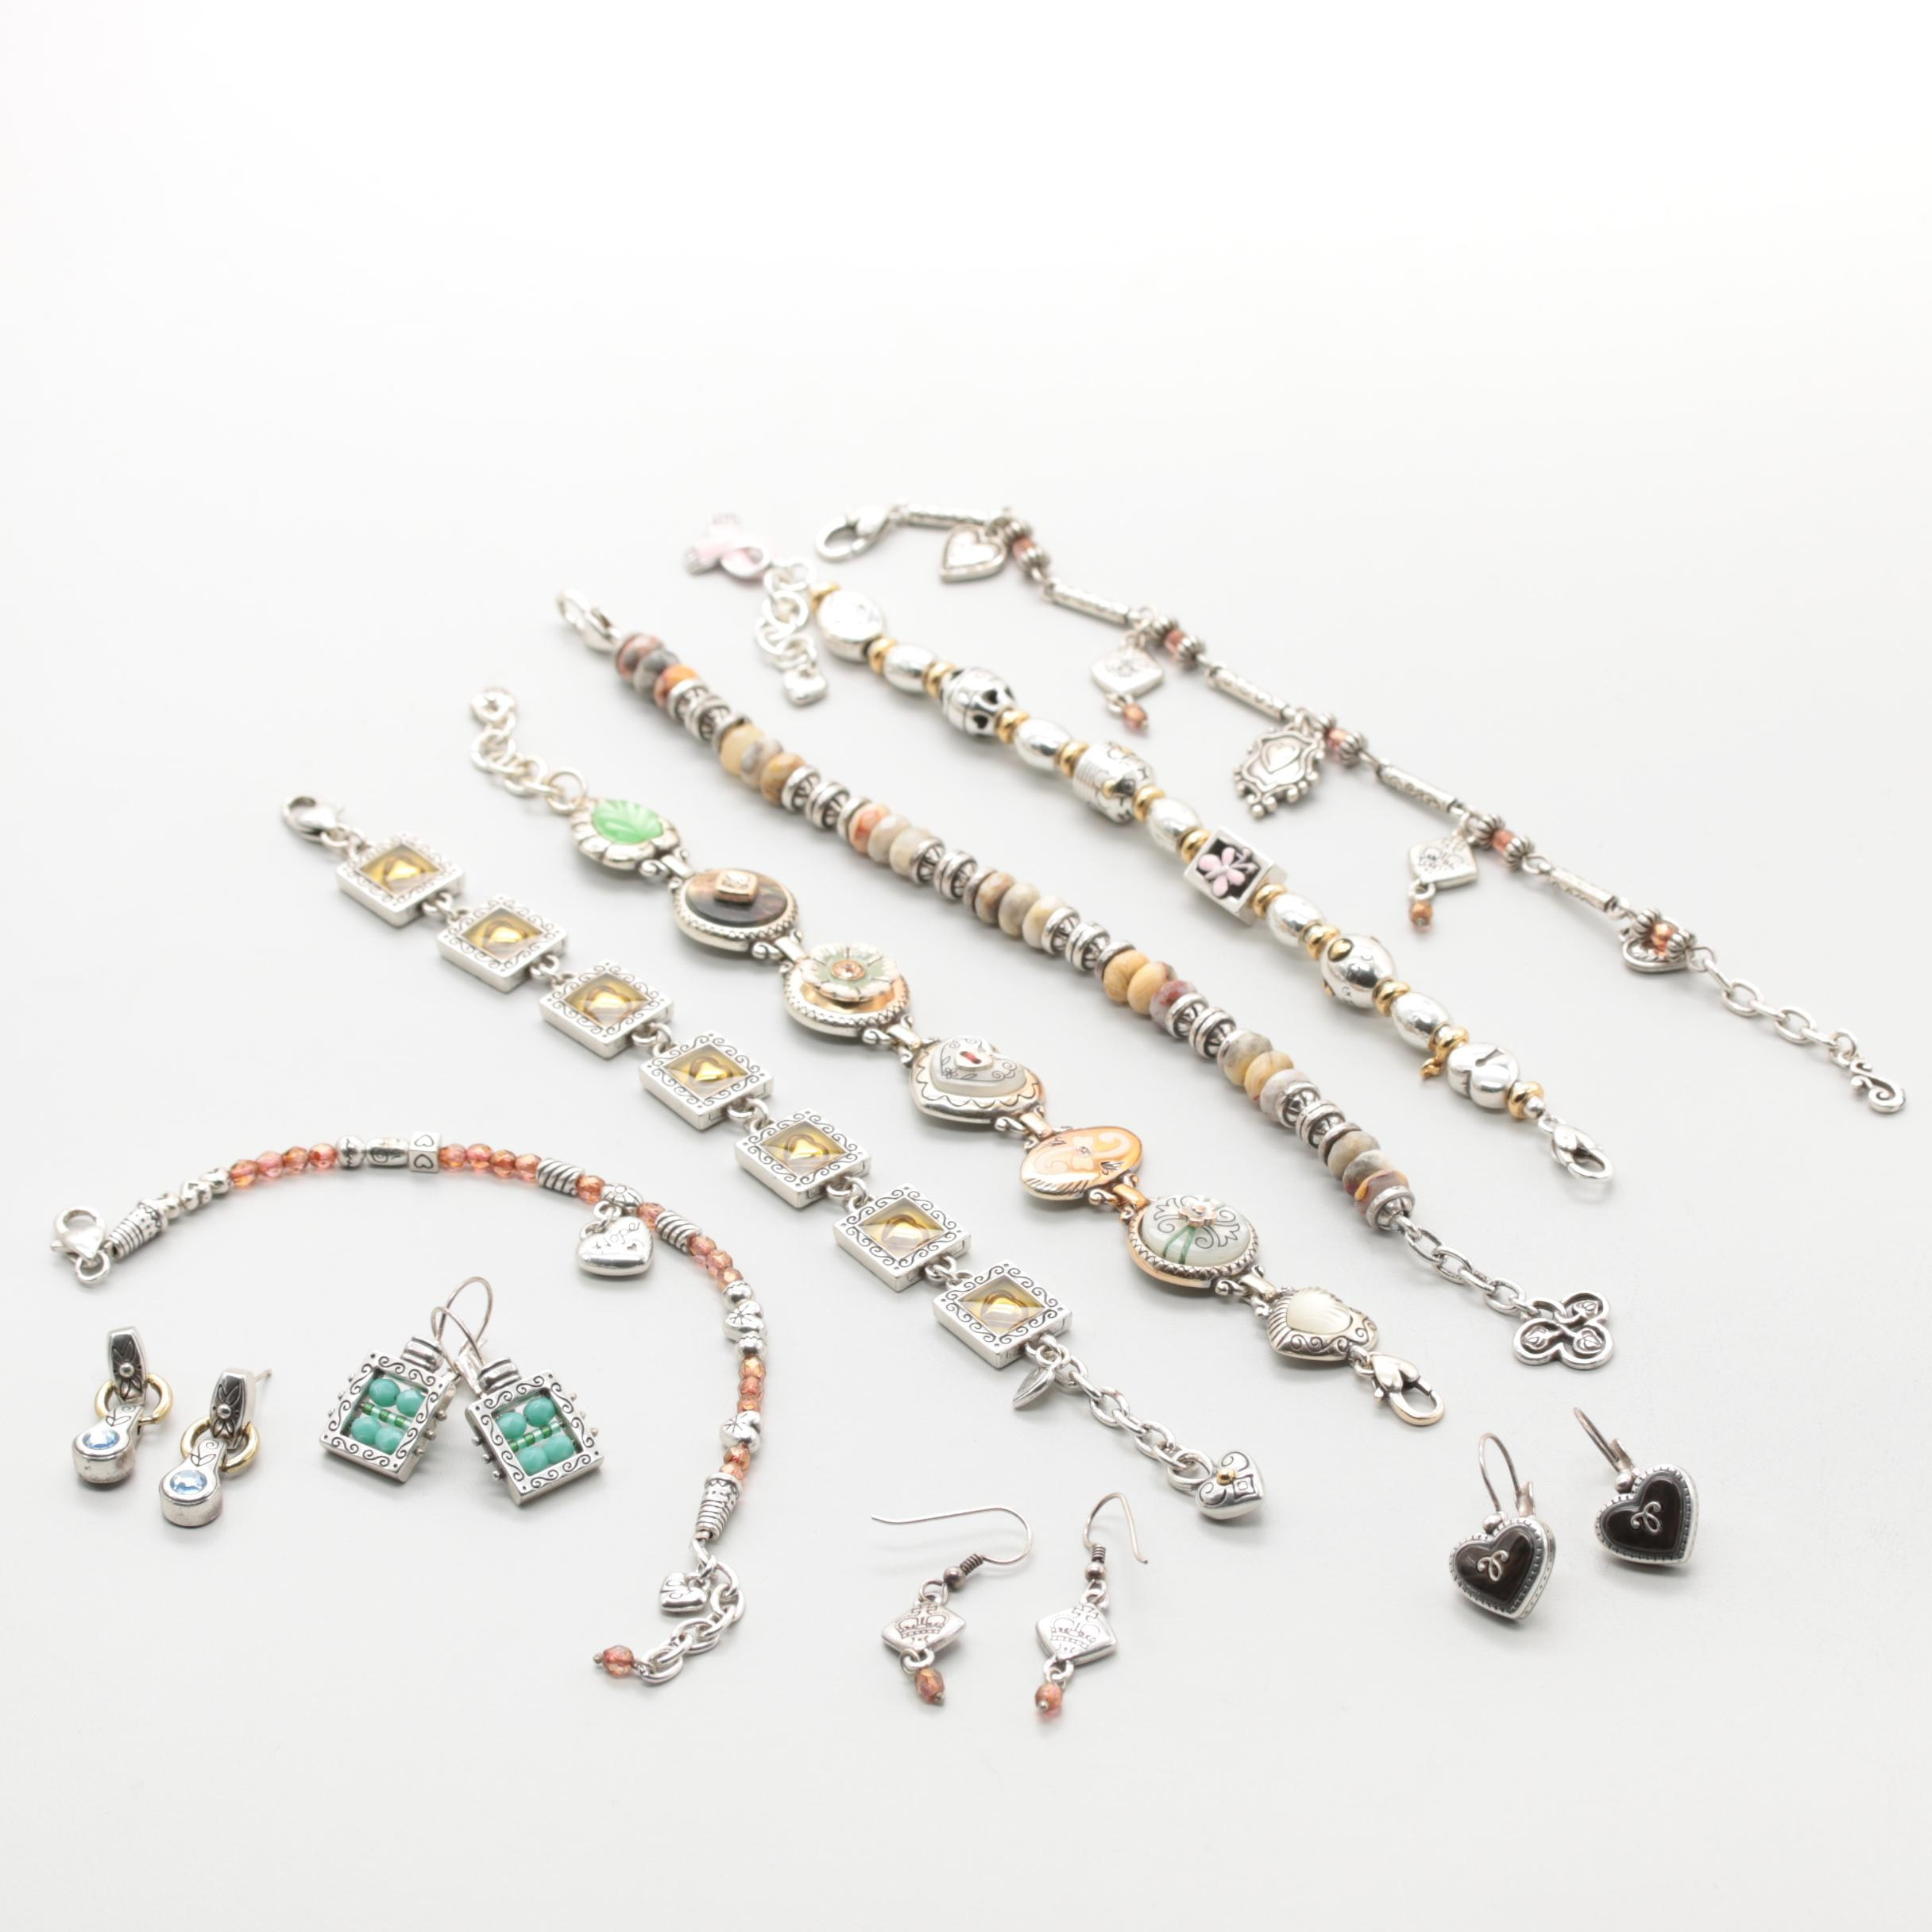 Silver Tone Jasper, Enamel and Shell Costume Jewelry Assortment with Brighton